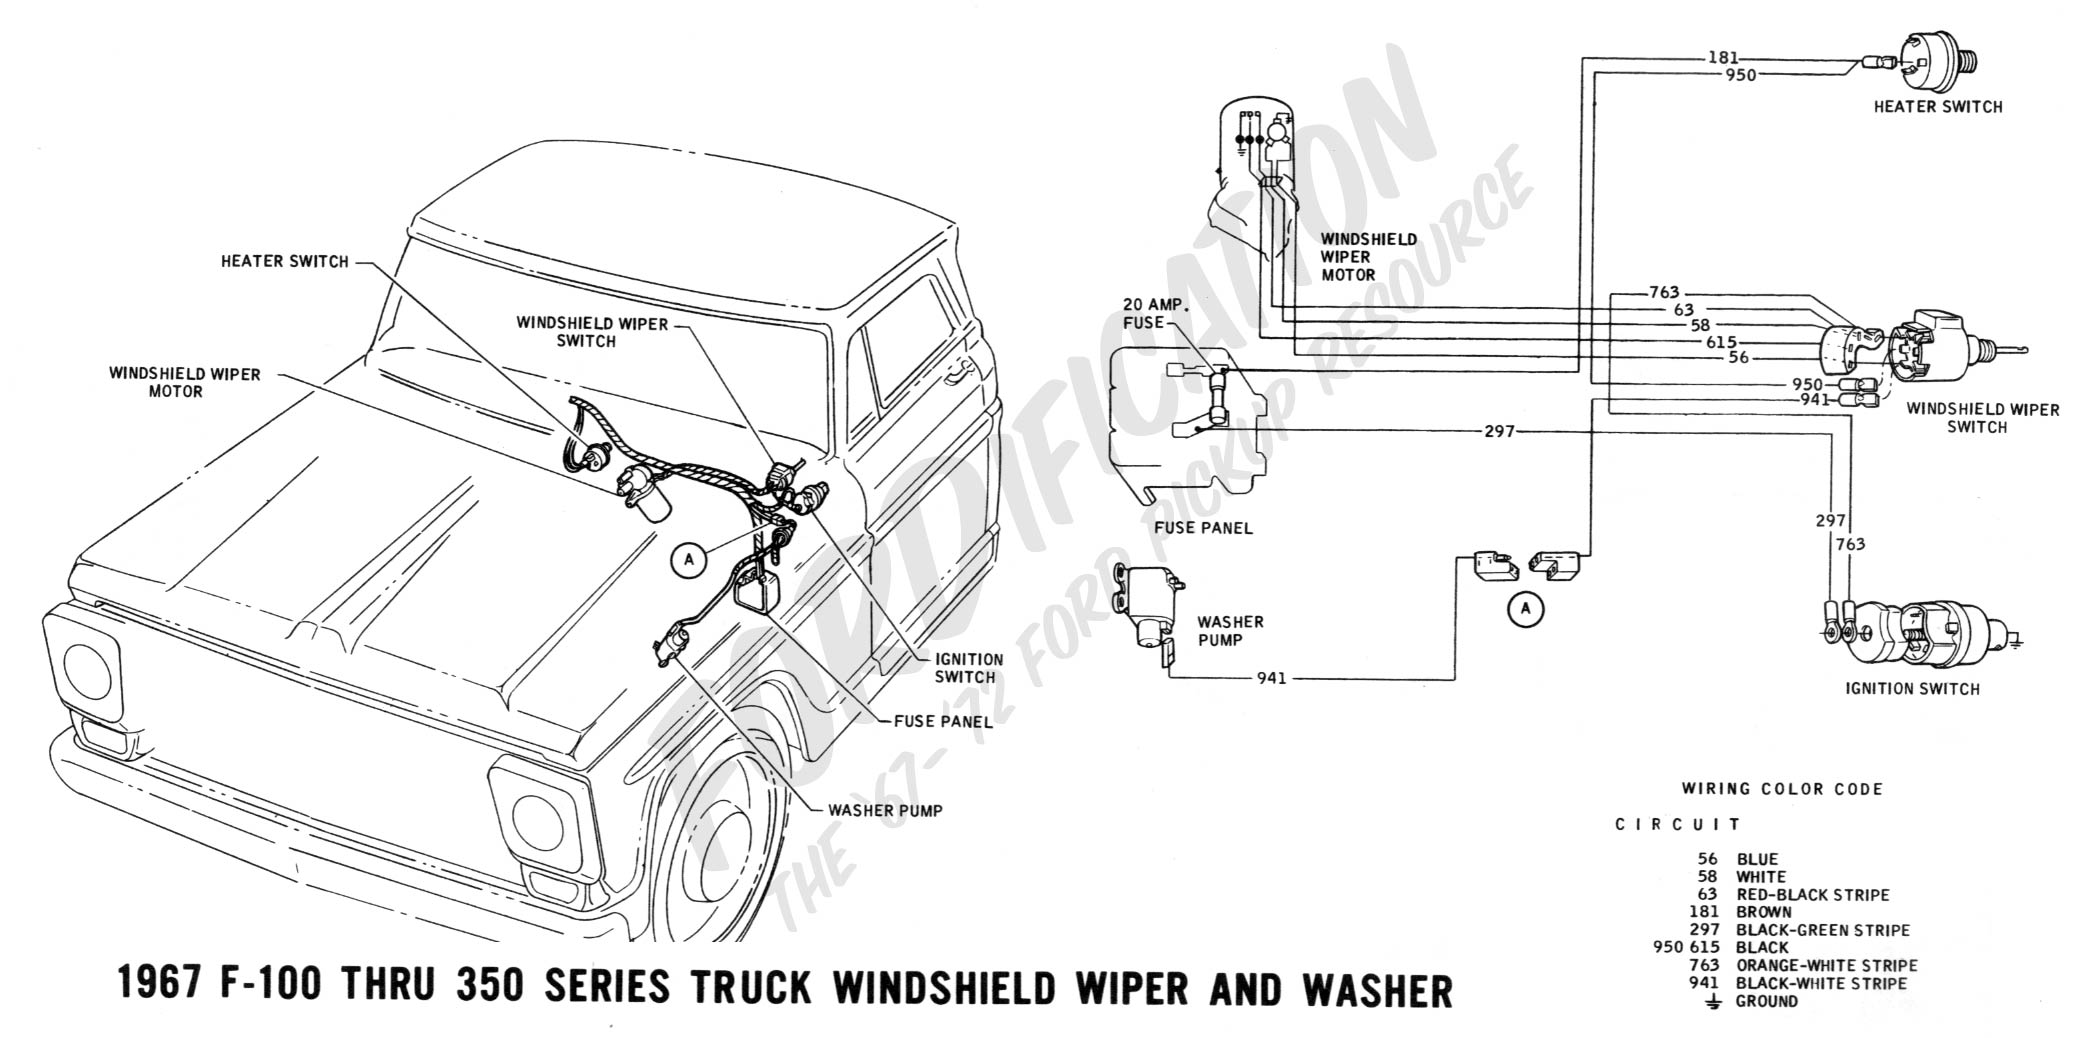 wiring 1967wipers ford truck technical drawings and schematics section h wiring windshield wiper switch wiring diagram at suagrazia.org